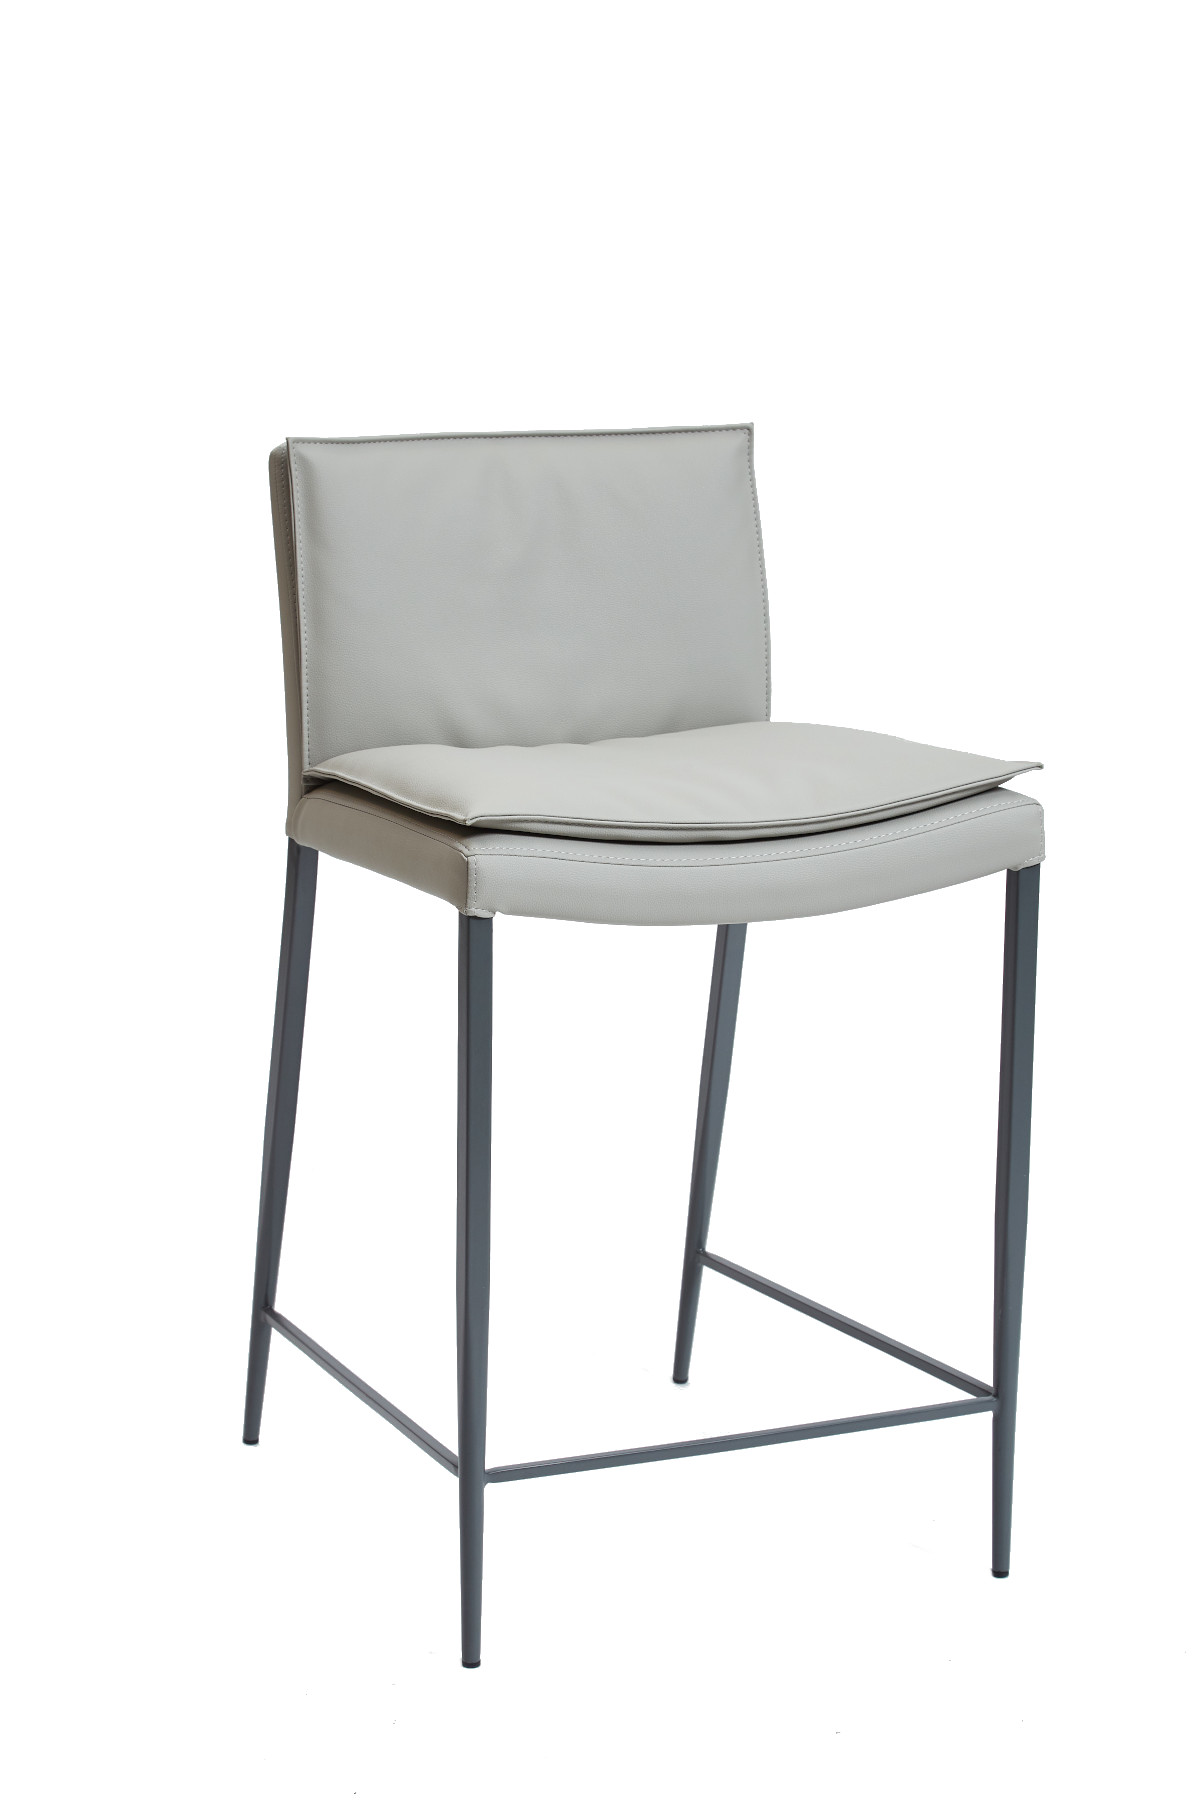 Maxsoft Counter Stool - Grey